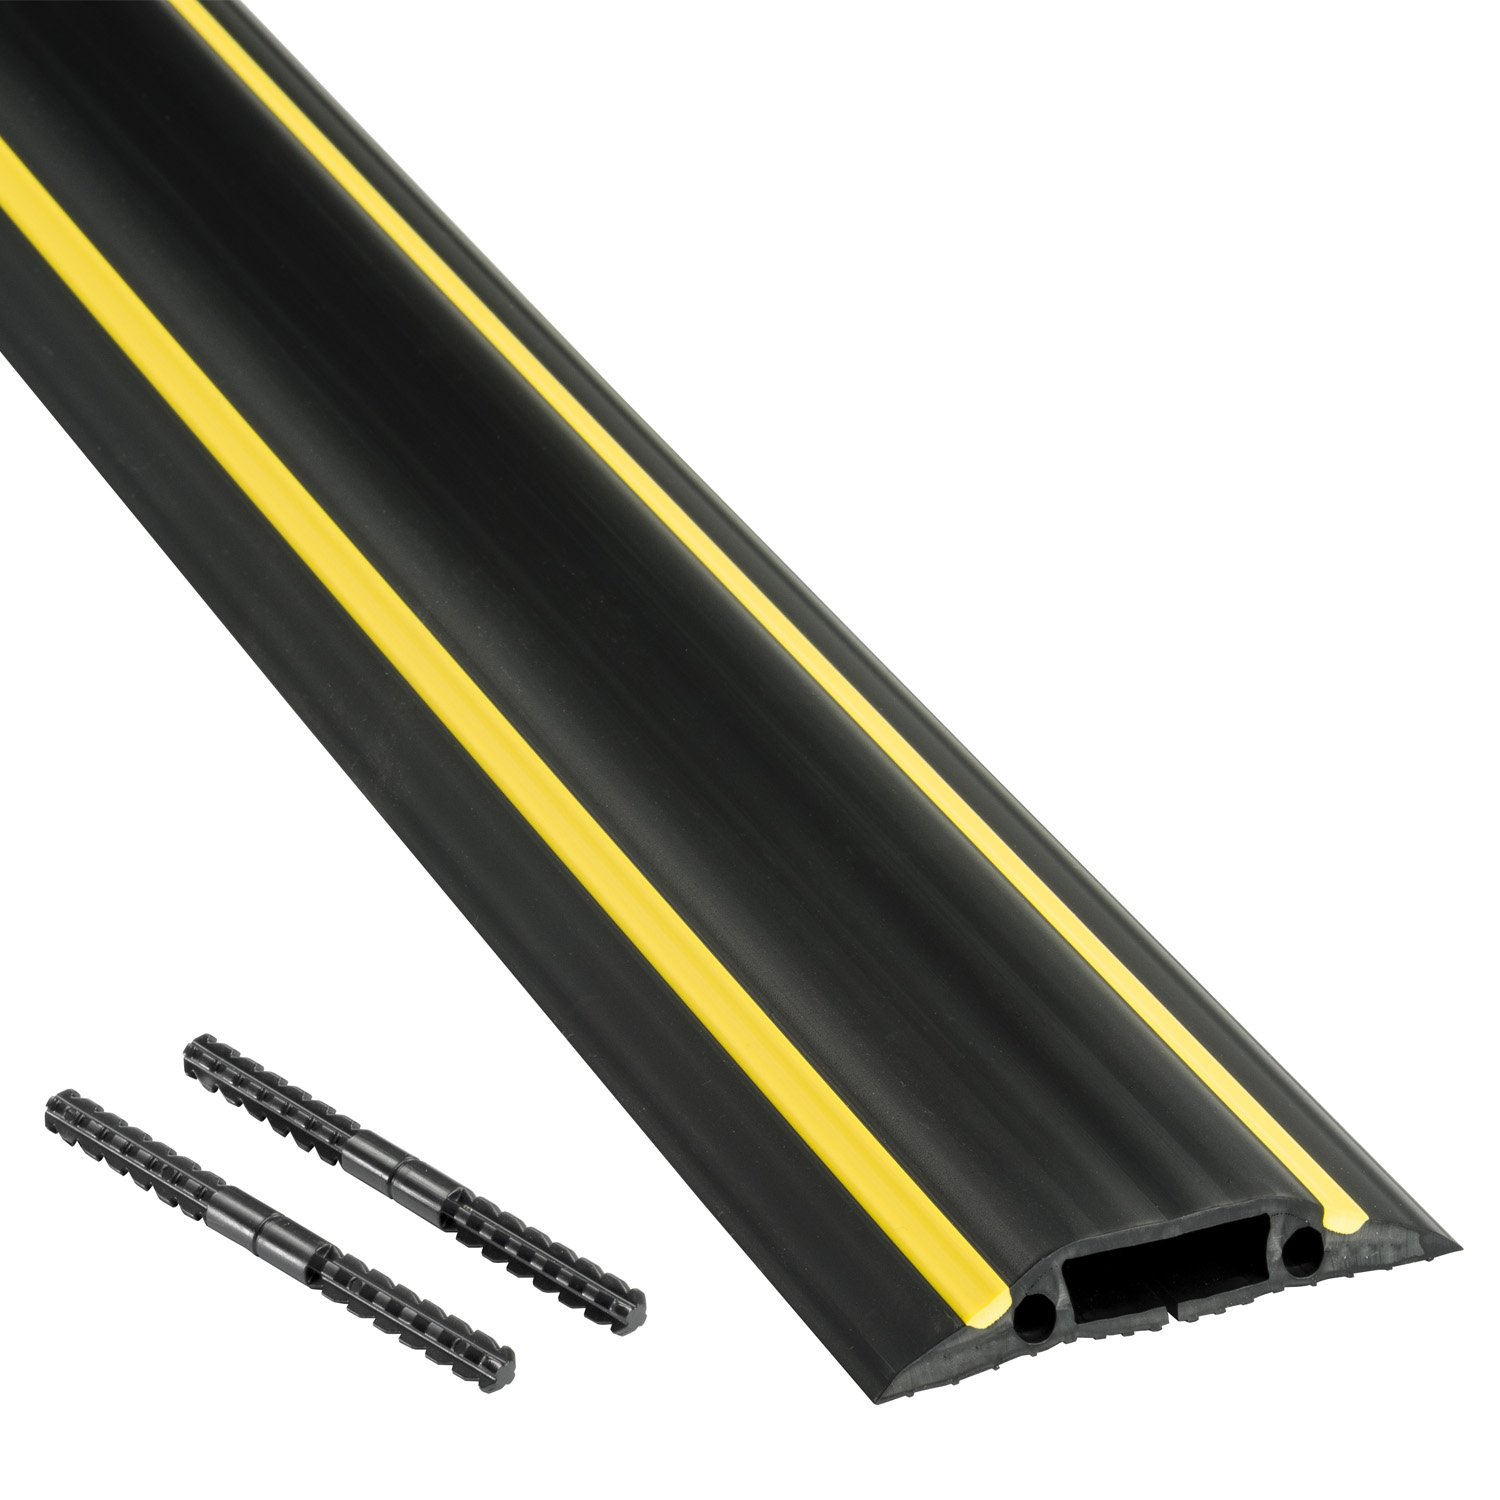 D-Line FC83H Medium Duty Linkable Cable Protector/Floor Cable Cover | Cable Tidy Trip Protection | Prevent Cable Trip Hazards in Home & Office. 83mm Wide, 30x10mm Cable Cavity, 1.8m & 9m length - Black & Yellow